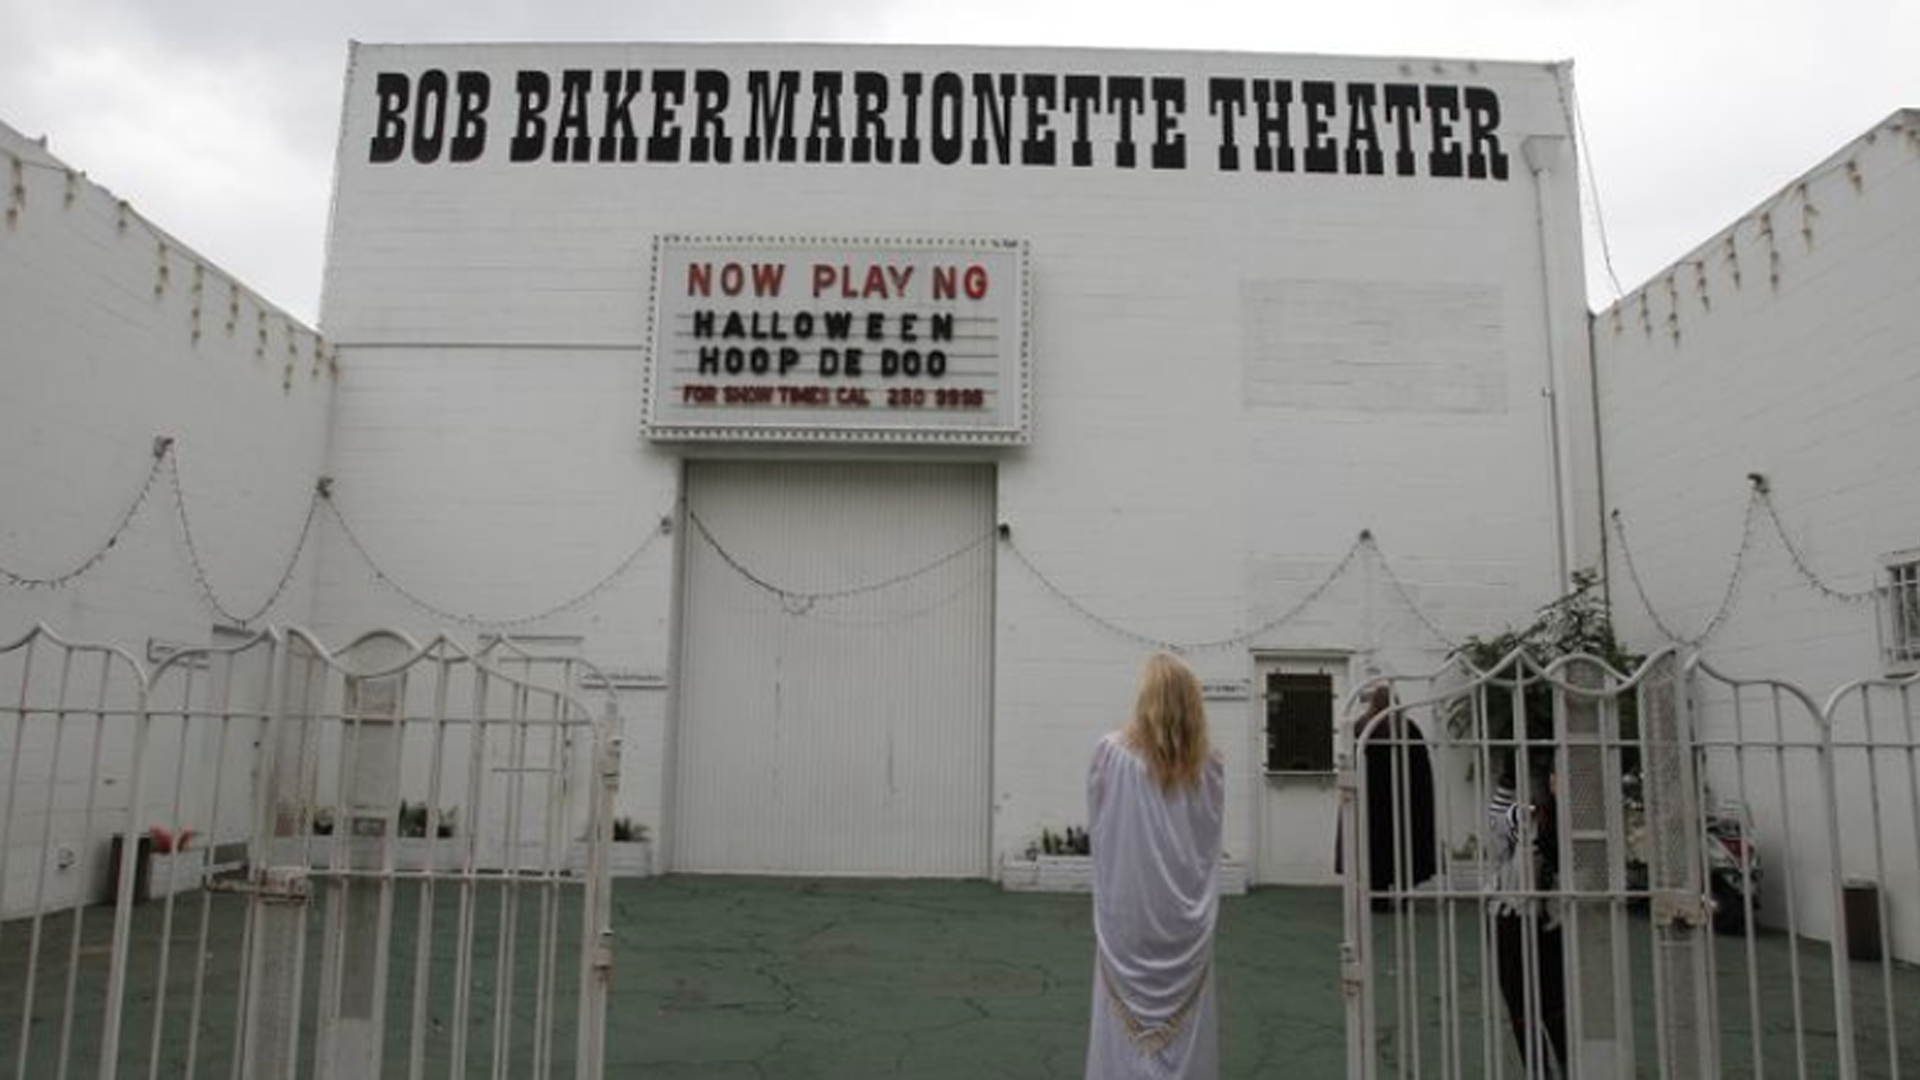 Suzy Vecchio stands outside the Bob Baker Marionette Theater after seeing a puppet show in this undated photo. The theater's lease on the building will end soon, and the building owner is planning to construct new apartments and retail space. (Credit: Allen J. Schaben / Los Angeles Times)